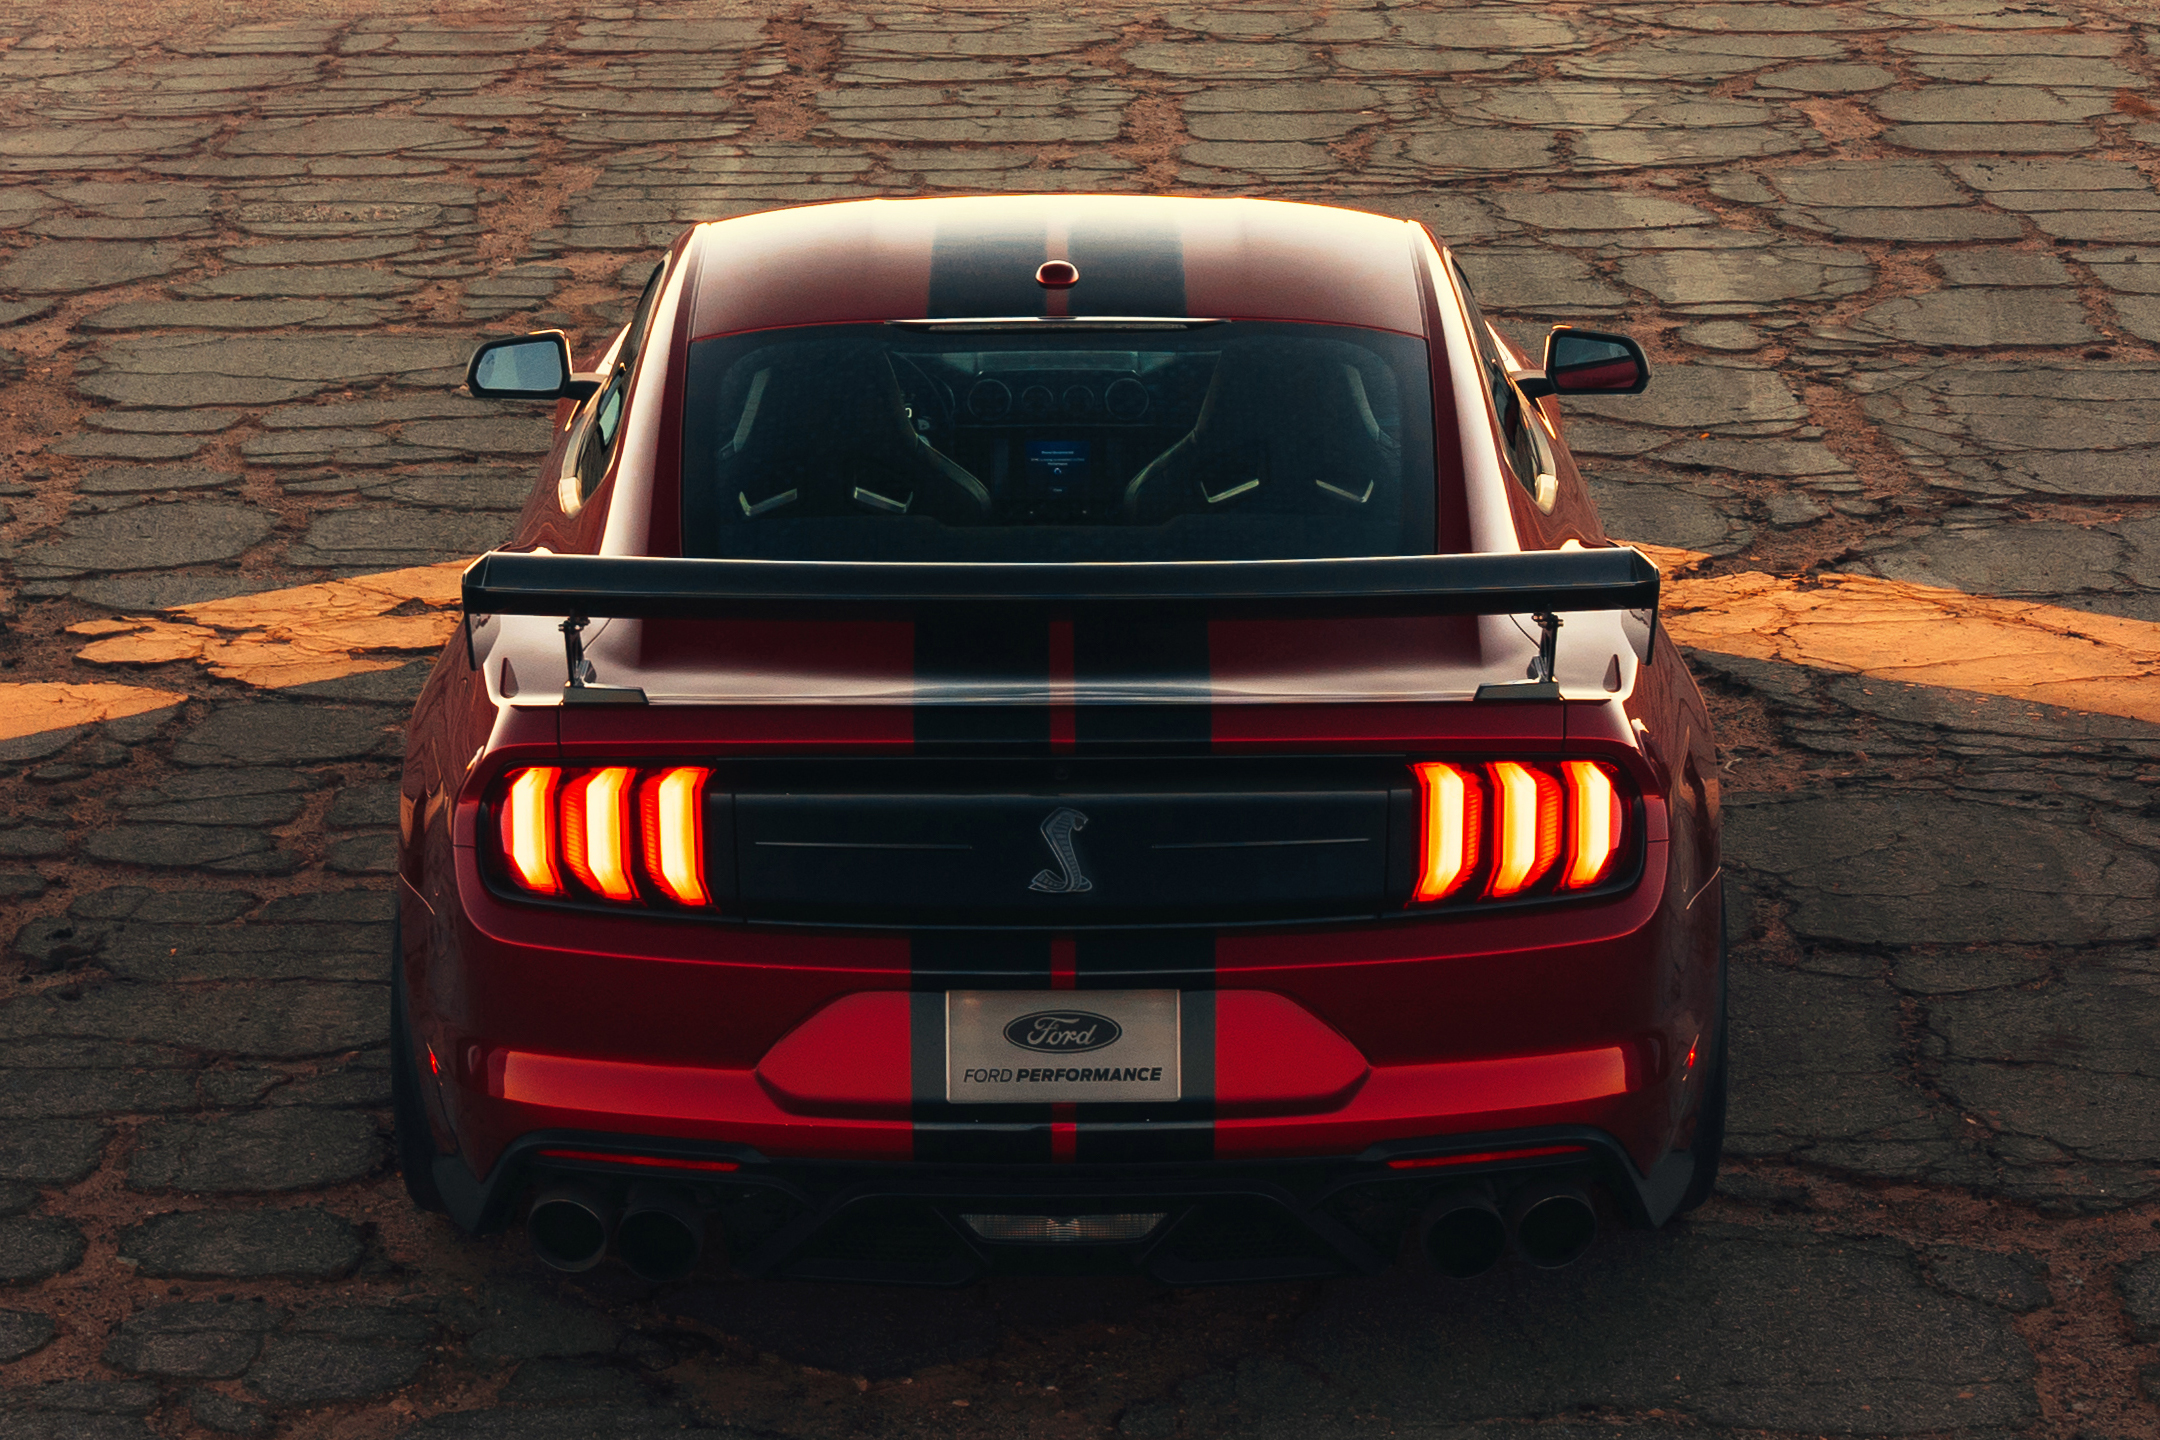 Ford Mustang 2020 Shelby GT500 - 2019 - top rear